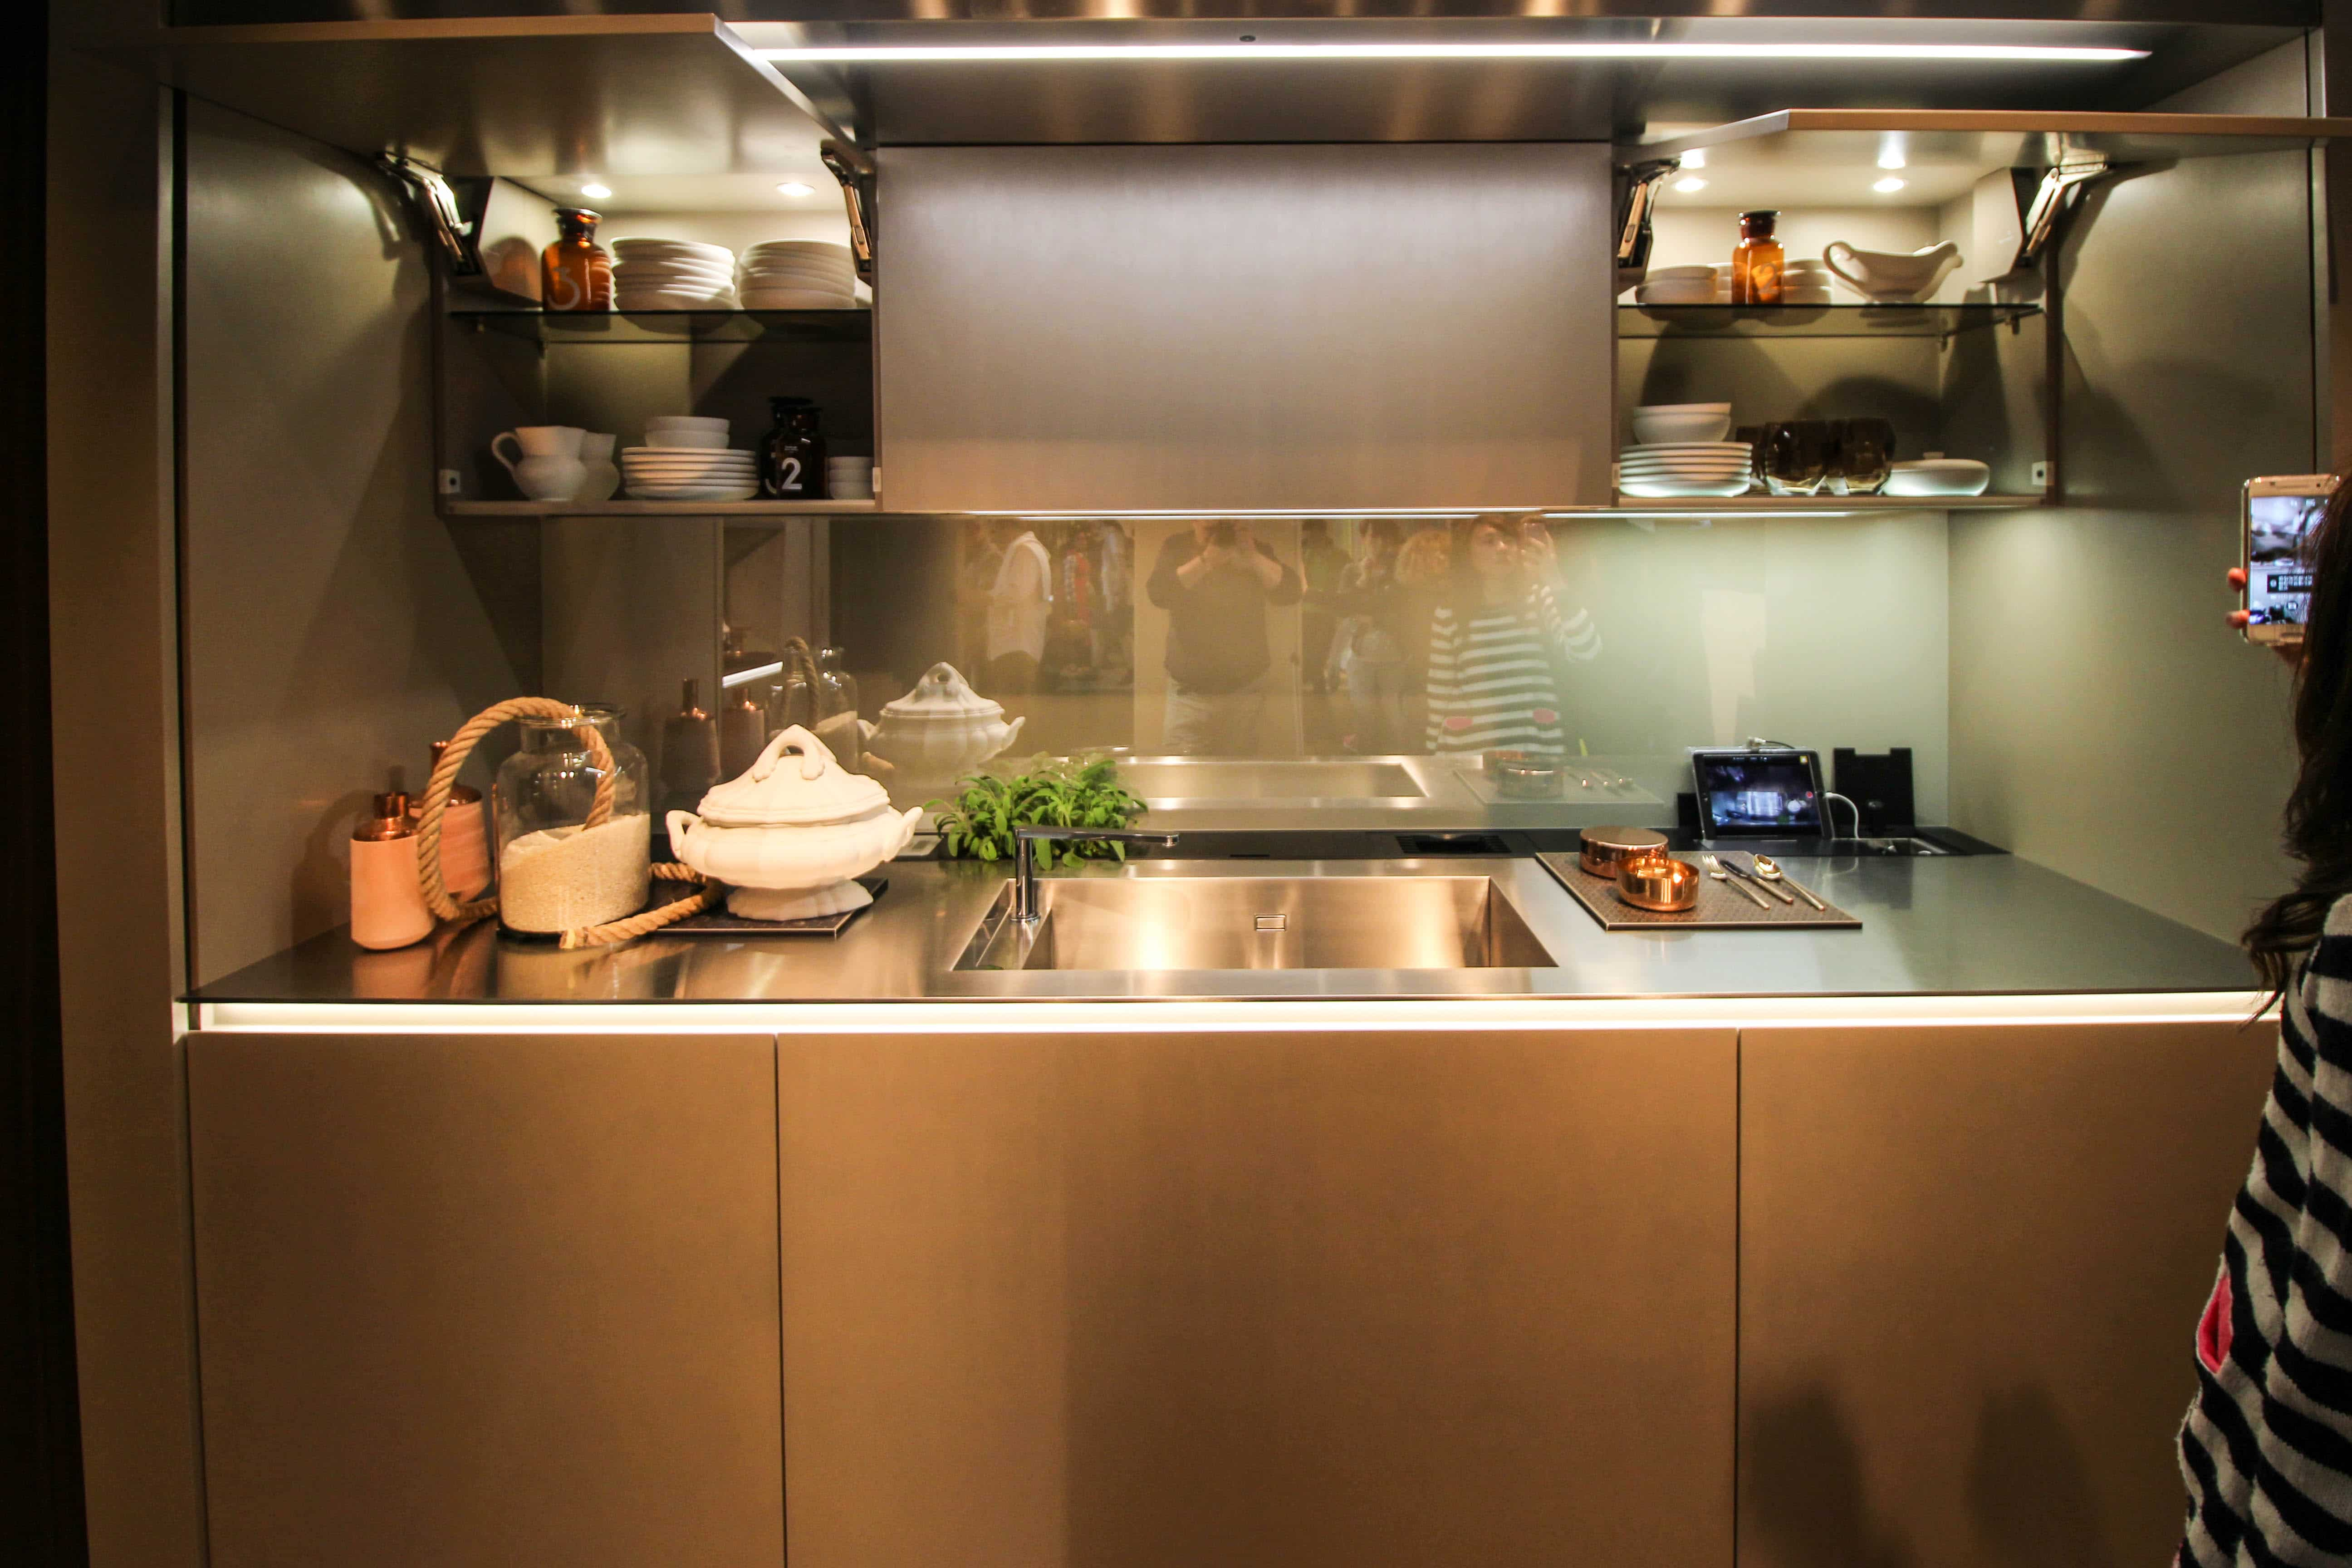 The latest trends and innovations in modern kitchen design.